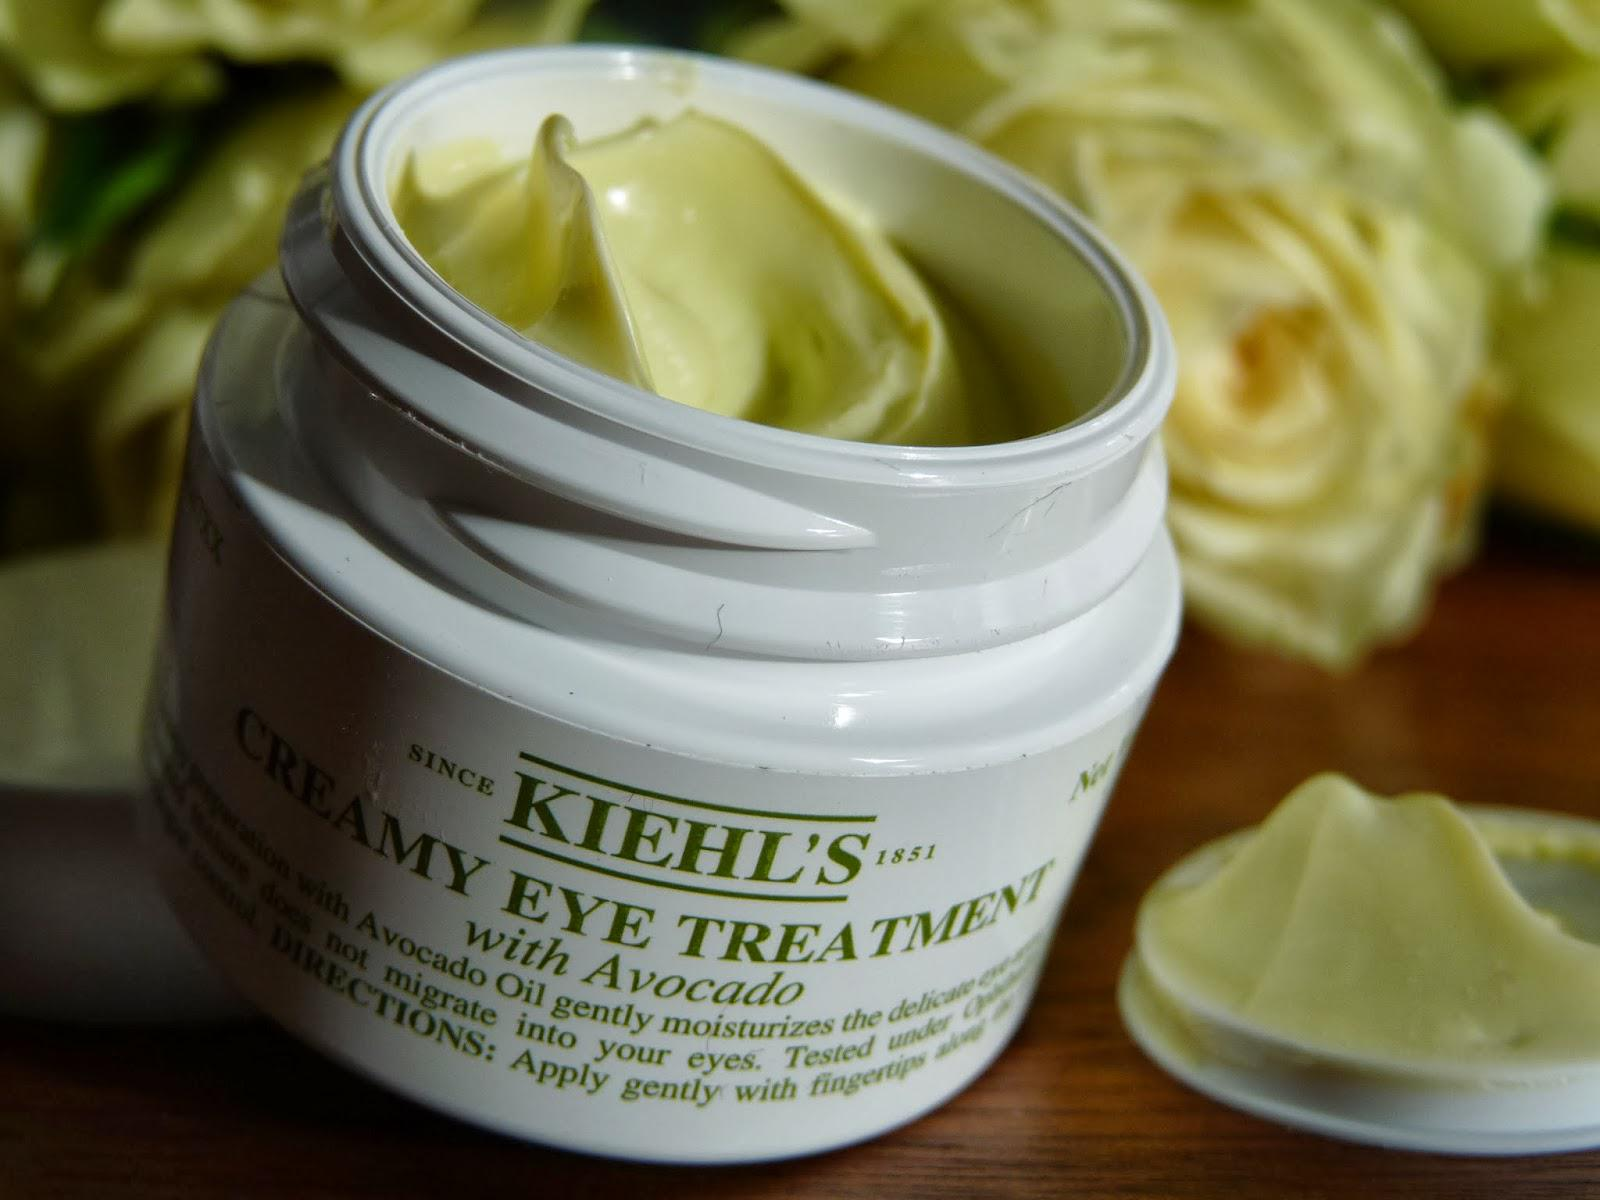 Kem dưỡng mắt Kiehl's Creamy Eye Treatment with Avocado 4